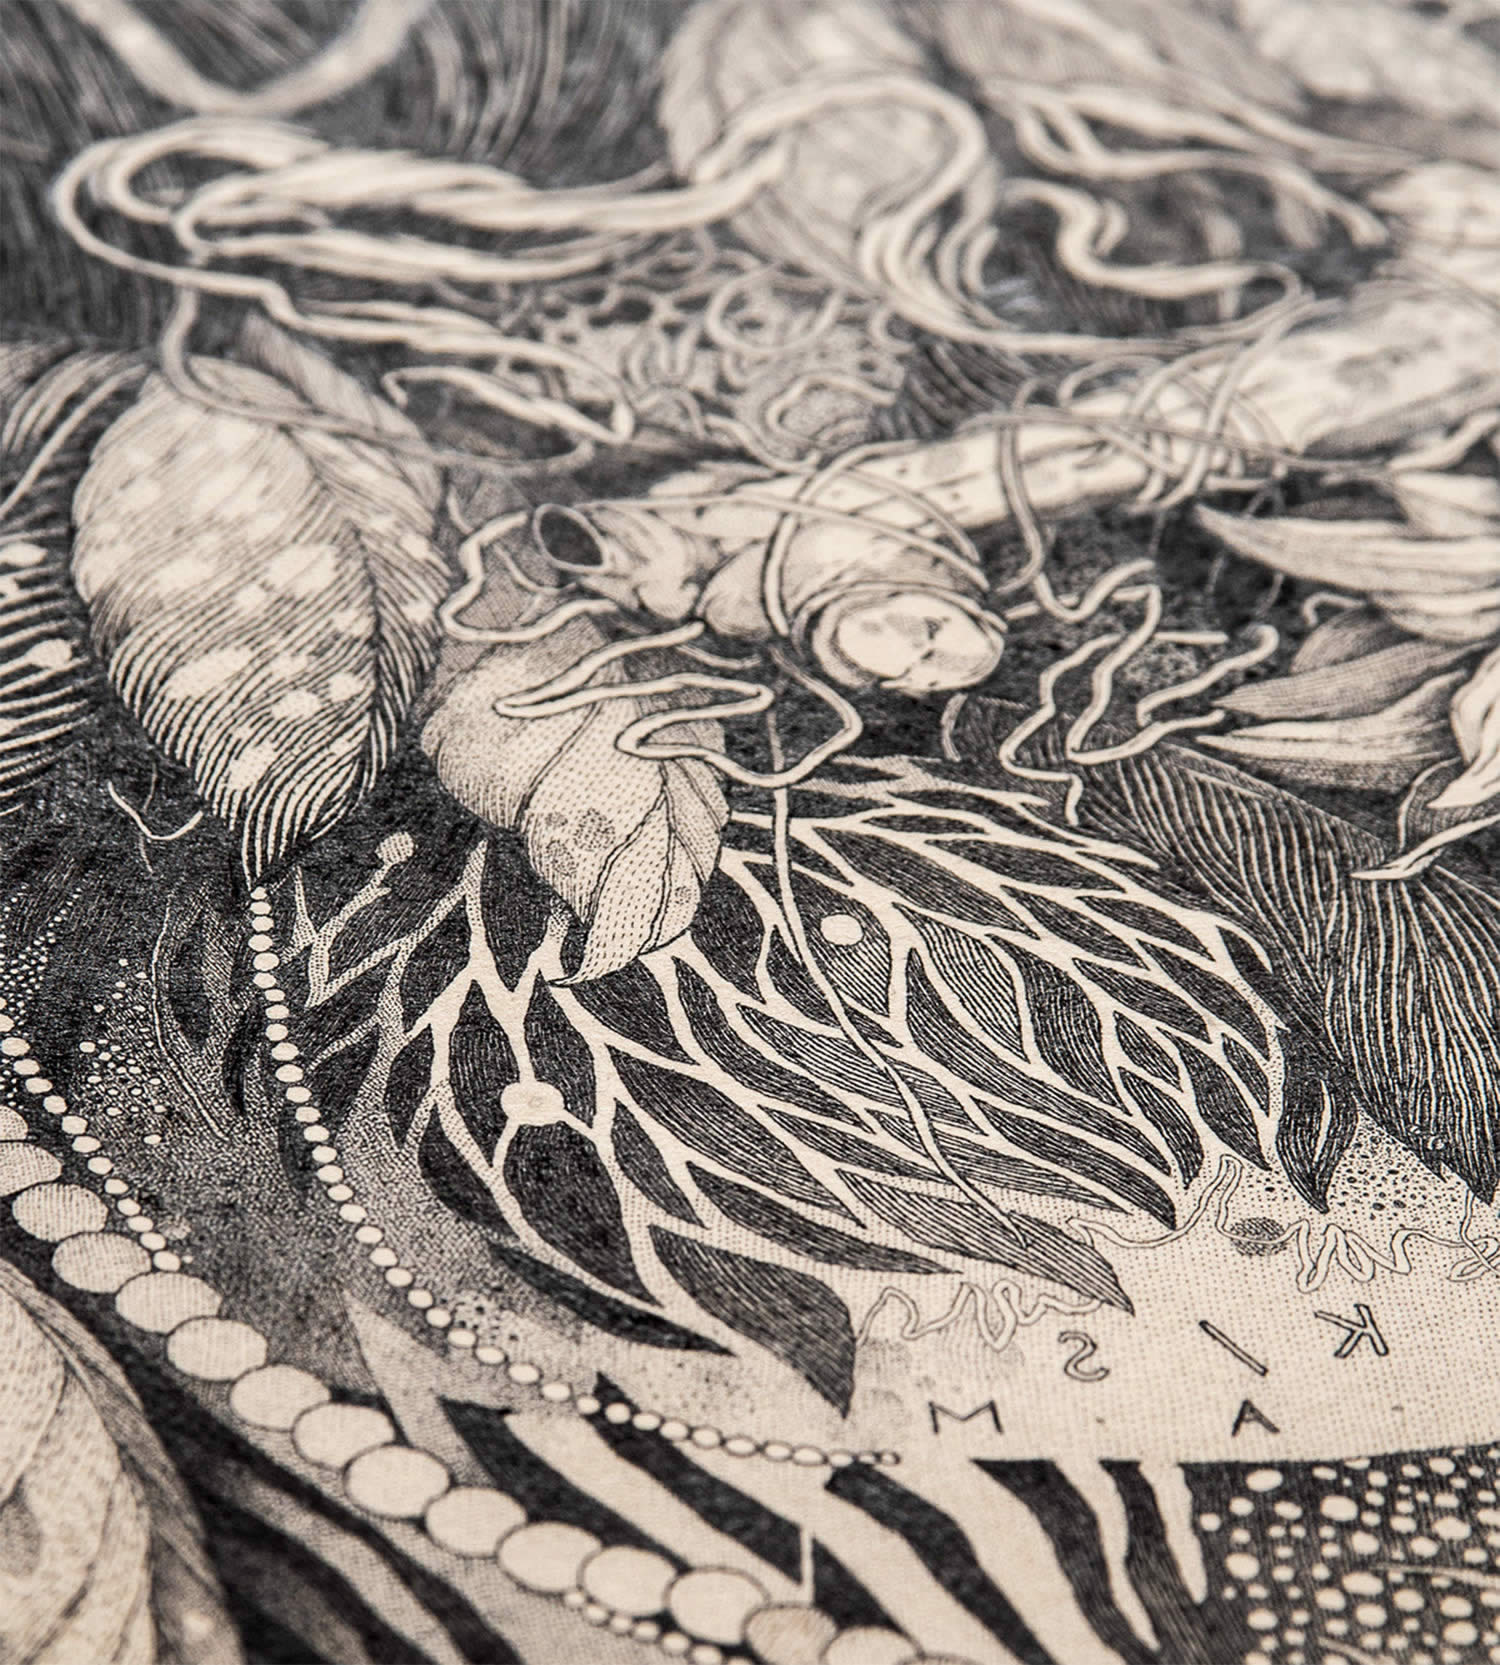 closeup of drawing by benze